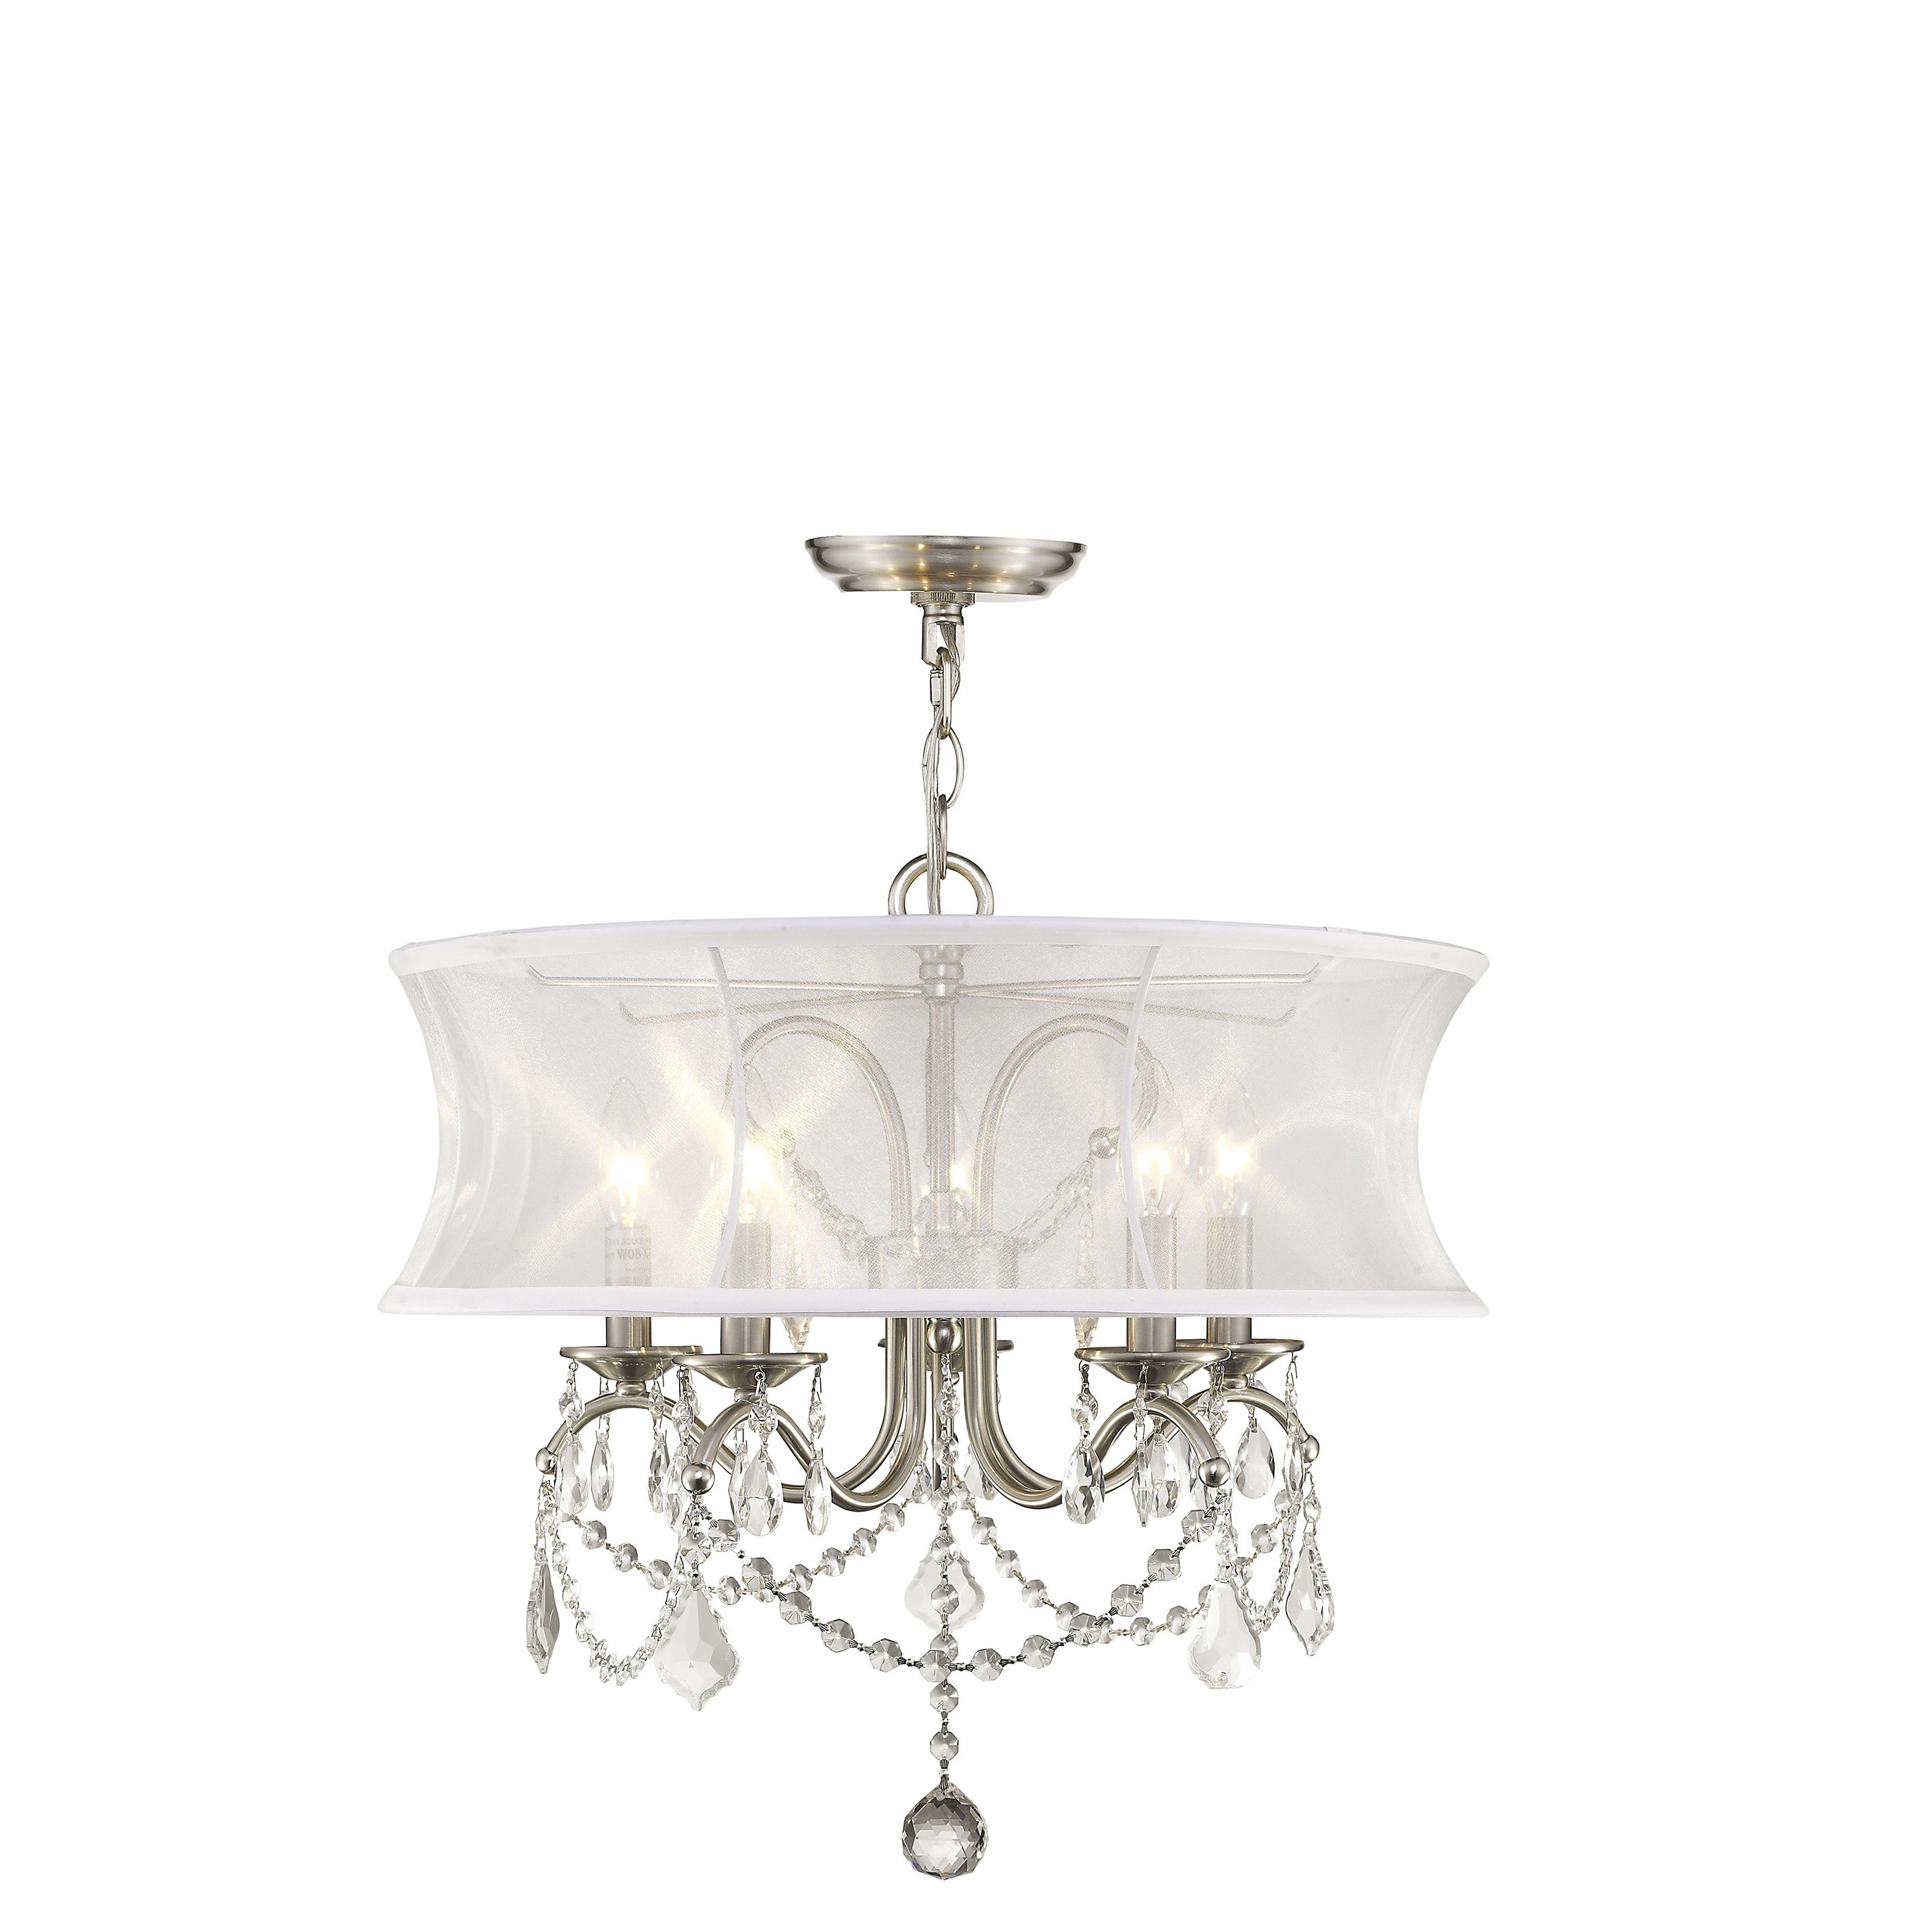 Abel 5 Light Drum Chandeliers With Well Liked Willa Arlo Interiors Aubrianne Drum Chandelier (View 7 of 20)